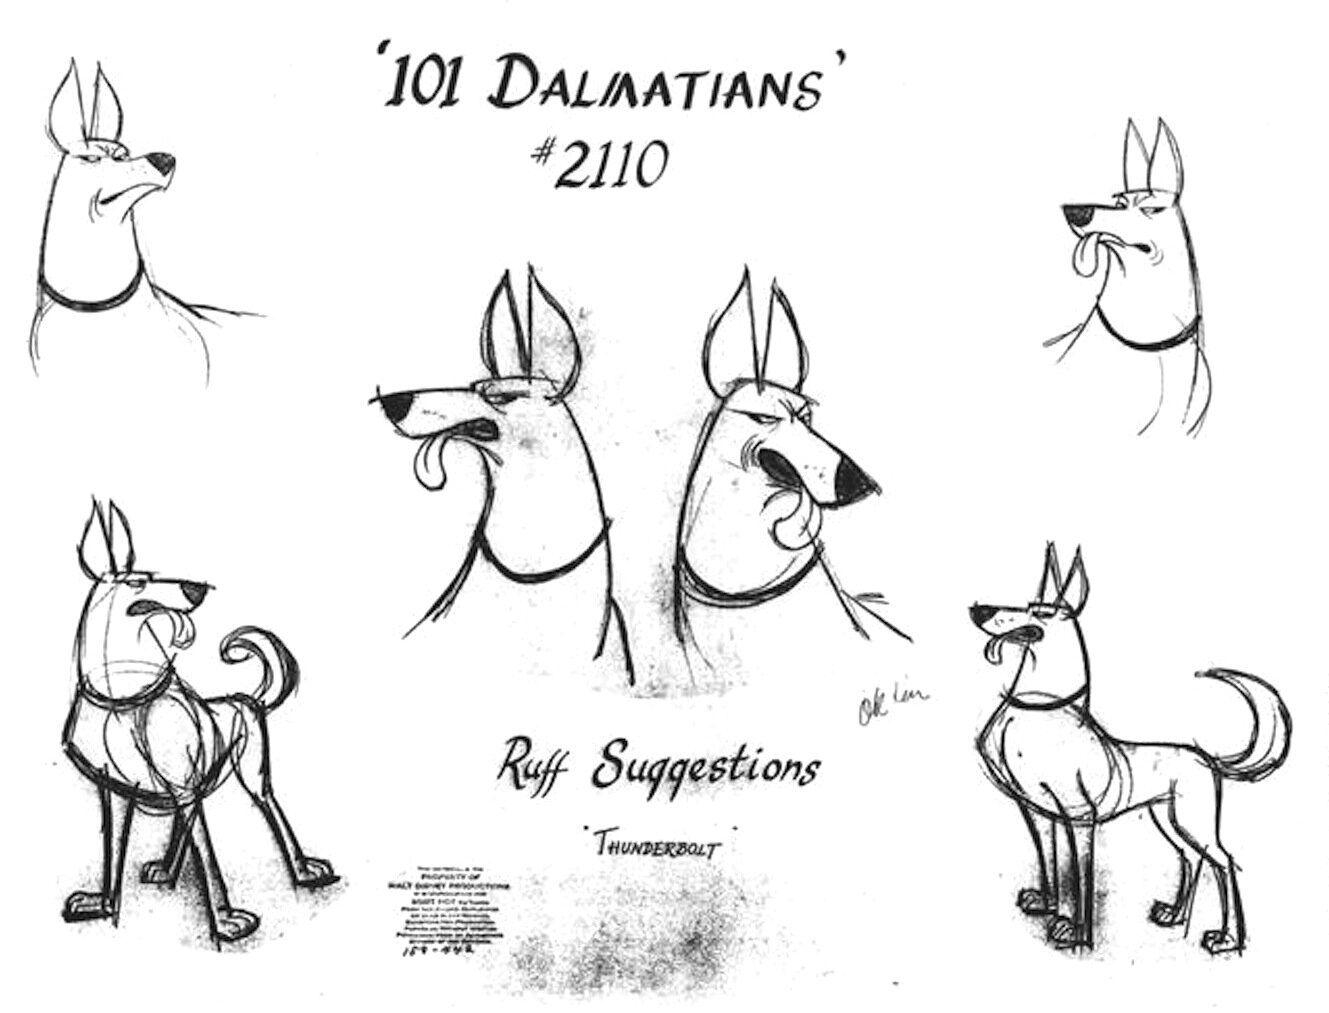 dalmatiancoloring9.gif (900×1150) | Puppy coloring pages, Disney ... | 762x1000